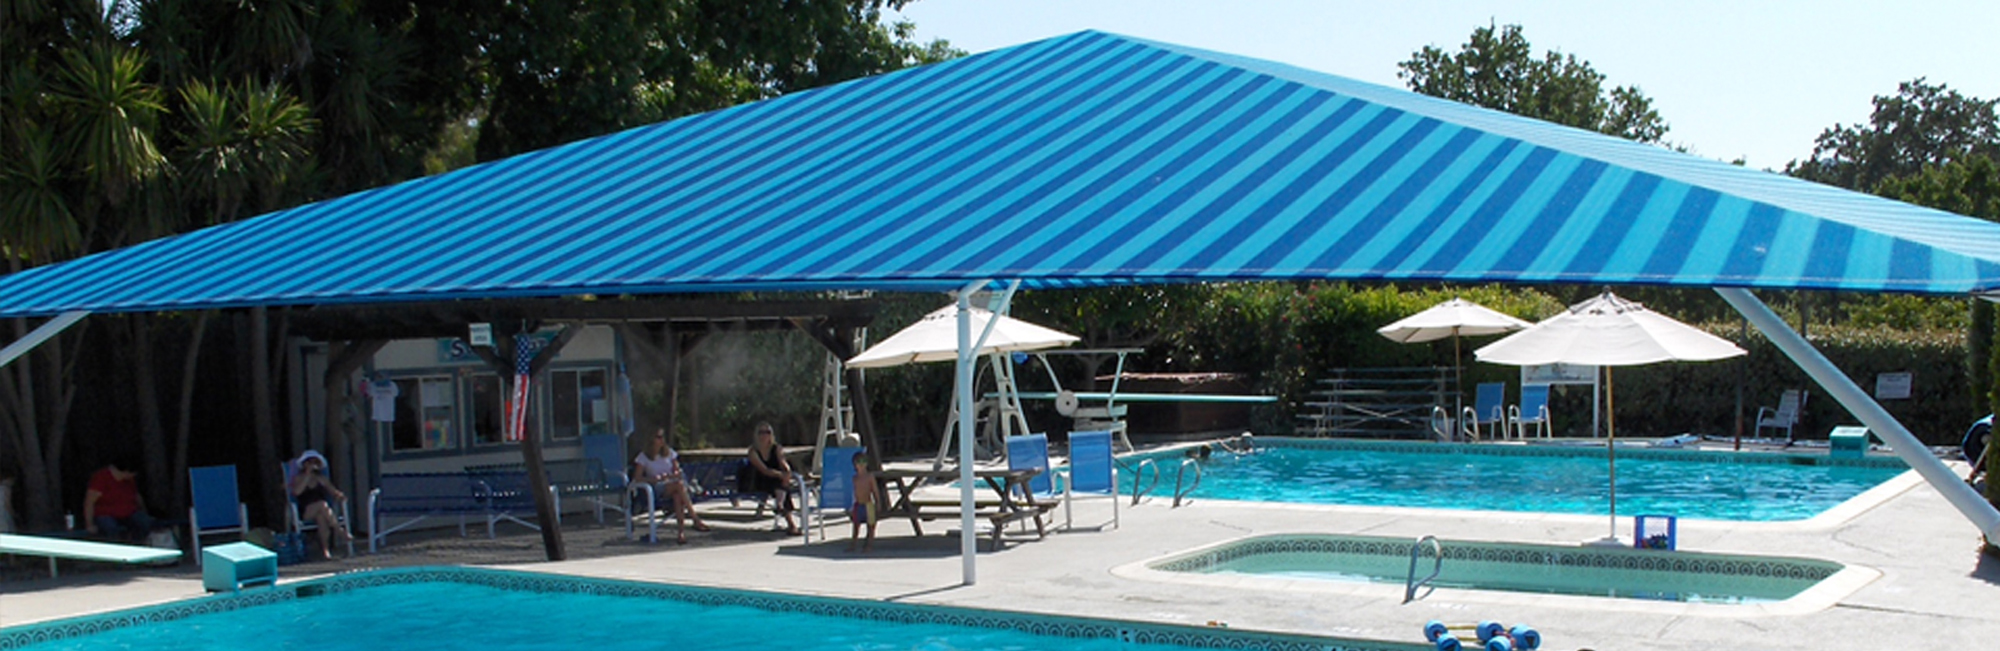 Protective Sun Shades for Pools & Get the Best Quality Sun Shade Canopy Design and Structure in San ...